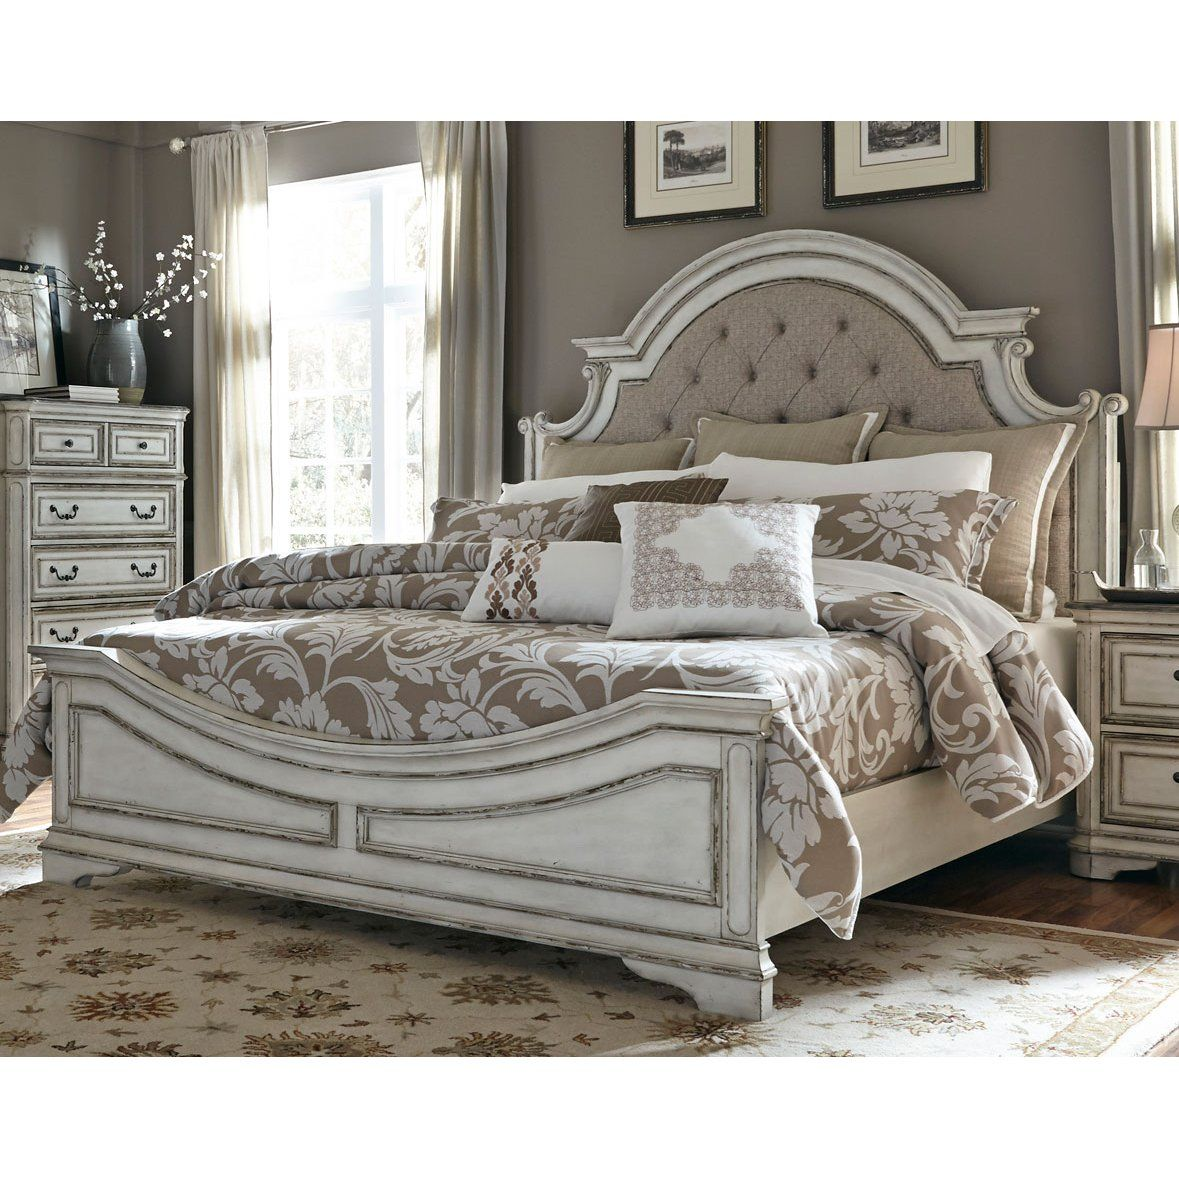 Traditional Antique White Queen Bed Magnolia Manor RC